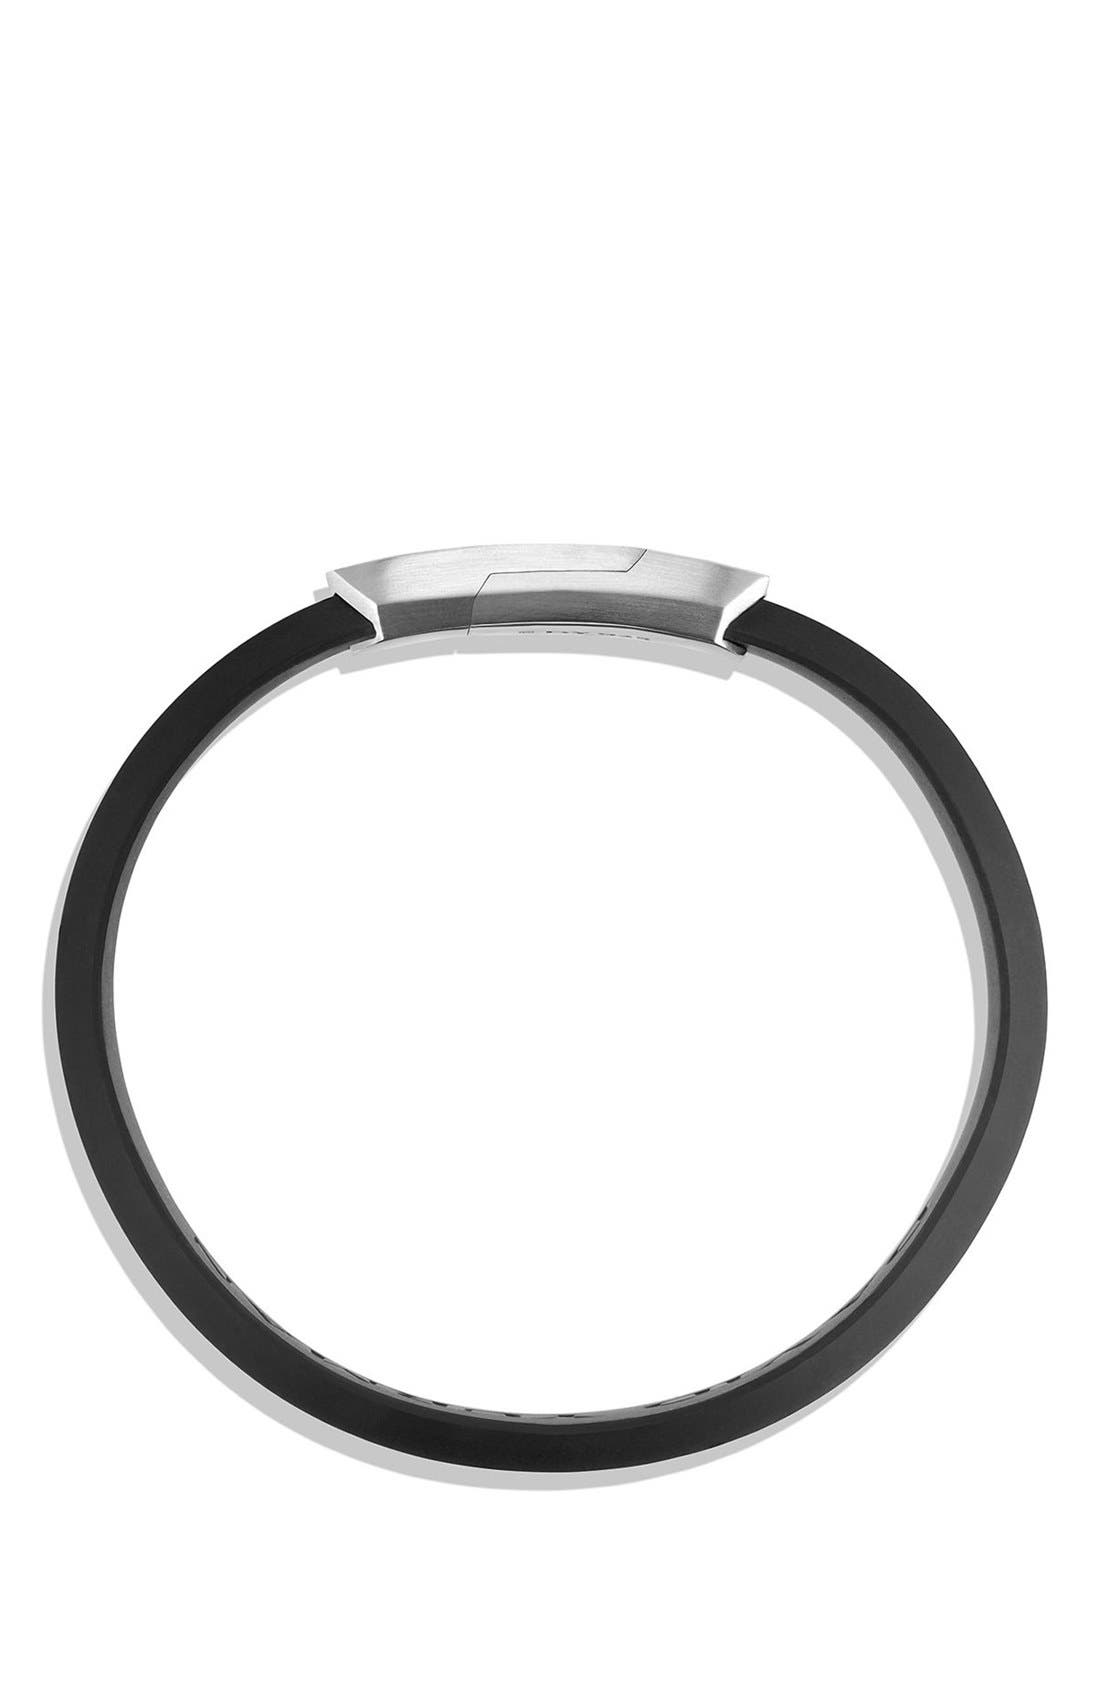 'Forged Carbon' Rubber ID Bracelet in Black,                             Alternate thumbnail 2, color,                             SILVER/ BLACK